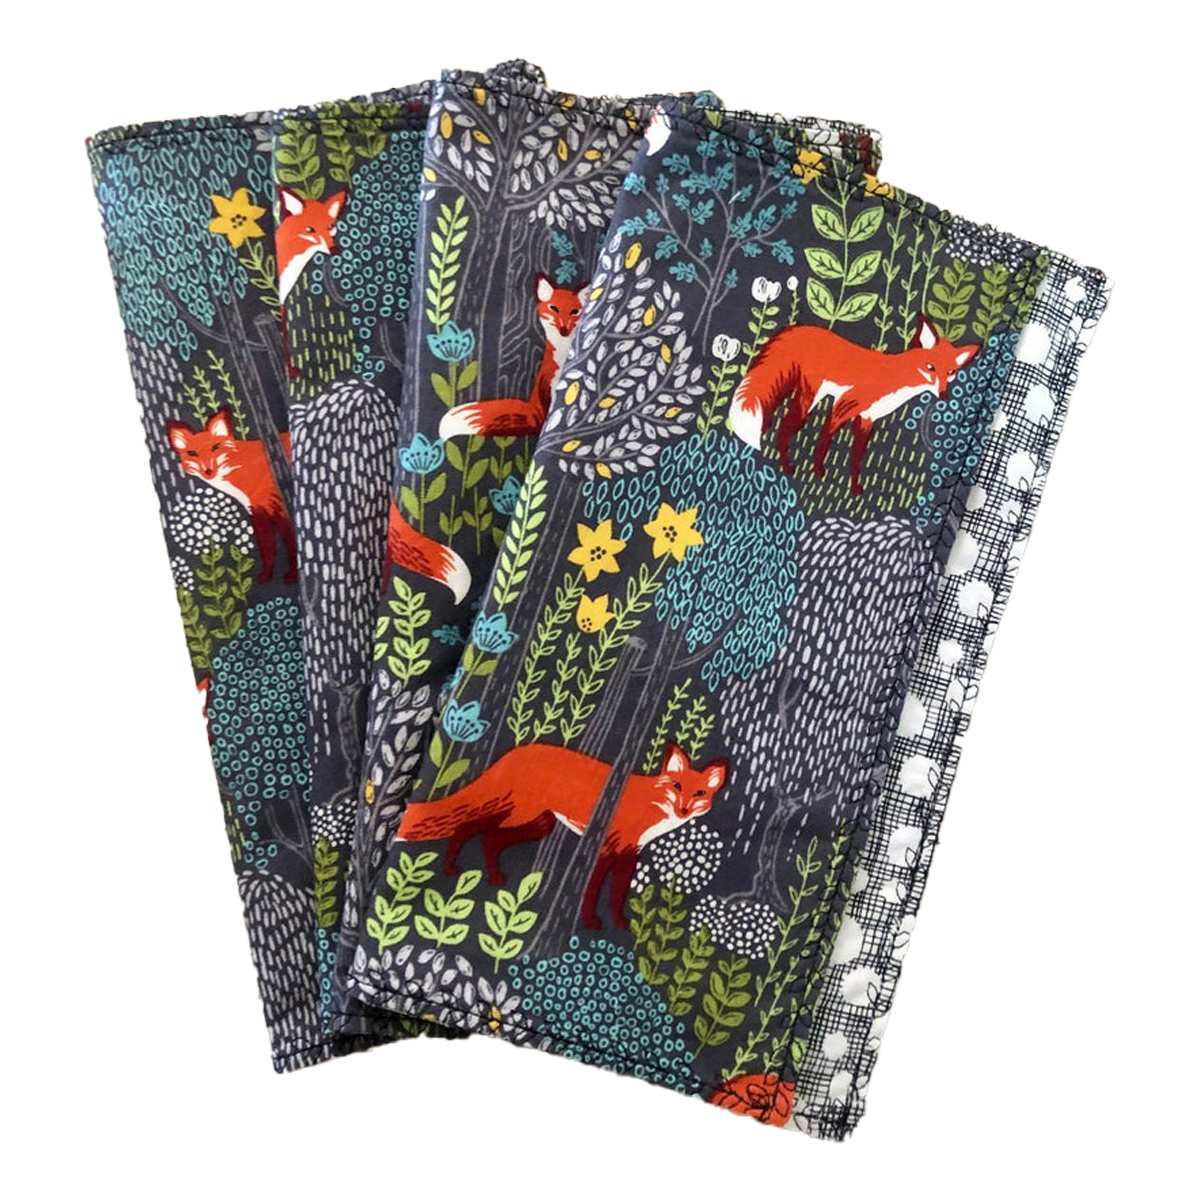 """Squeakymo - Cloth Napkins - Set of 4 OR 6 Michael Miller Into the Woods - 100% Cotton - 9""""x9"""" Napkins - Double Sided - Everyday Napkins - Table Napkins"""